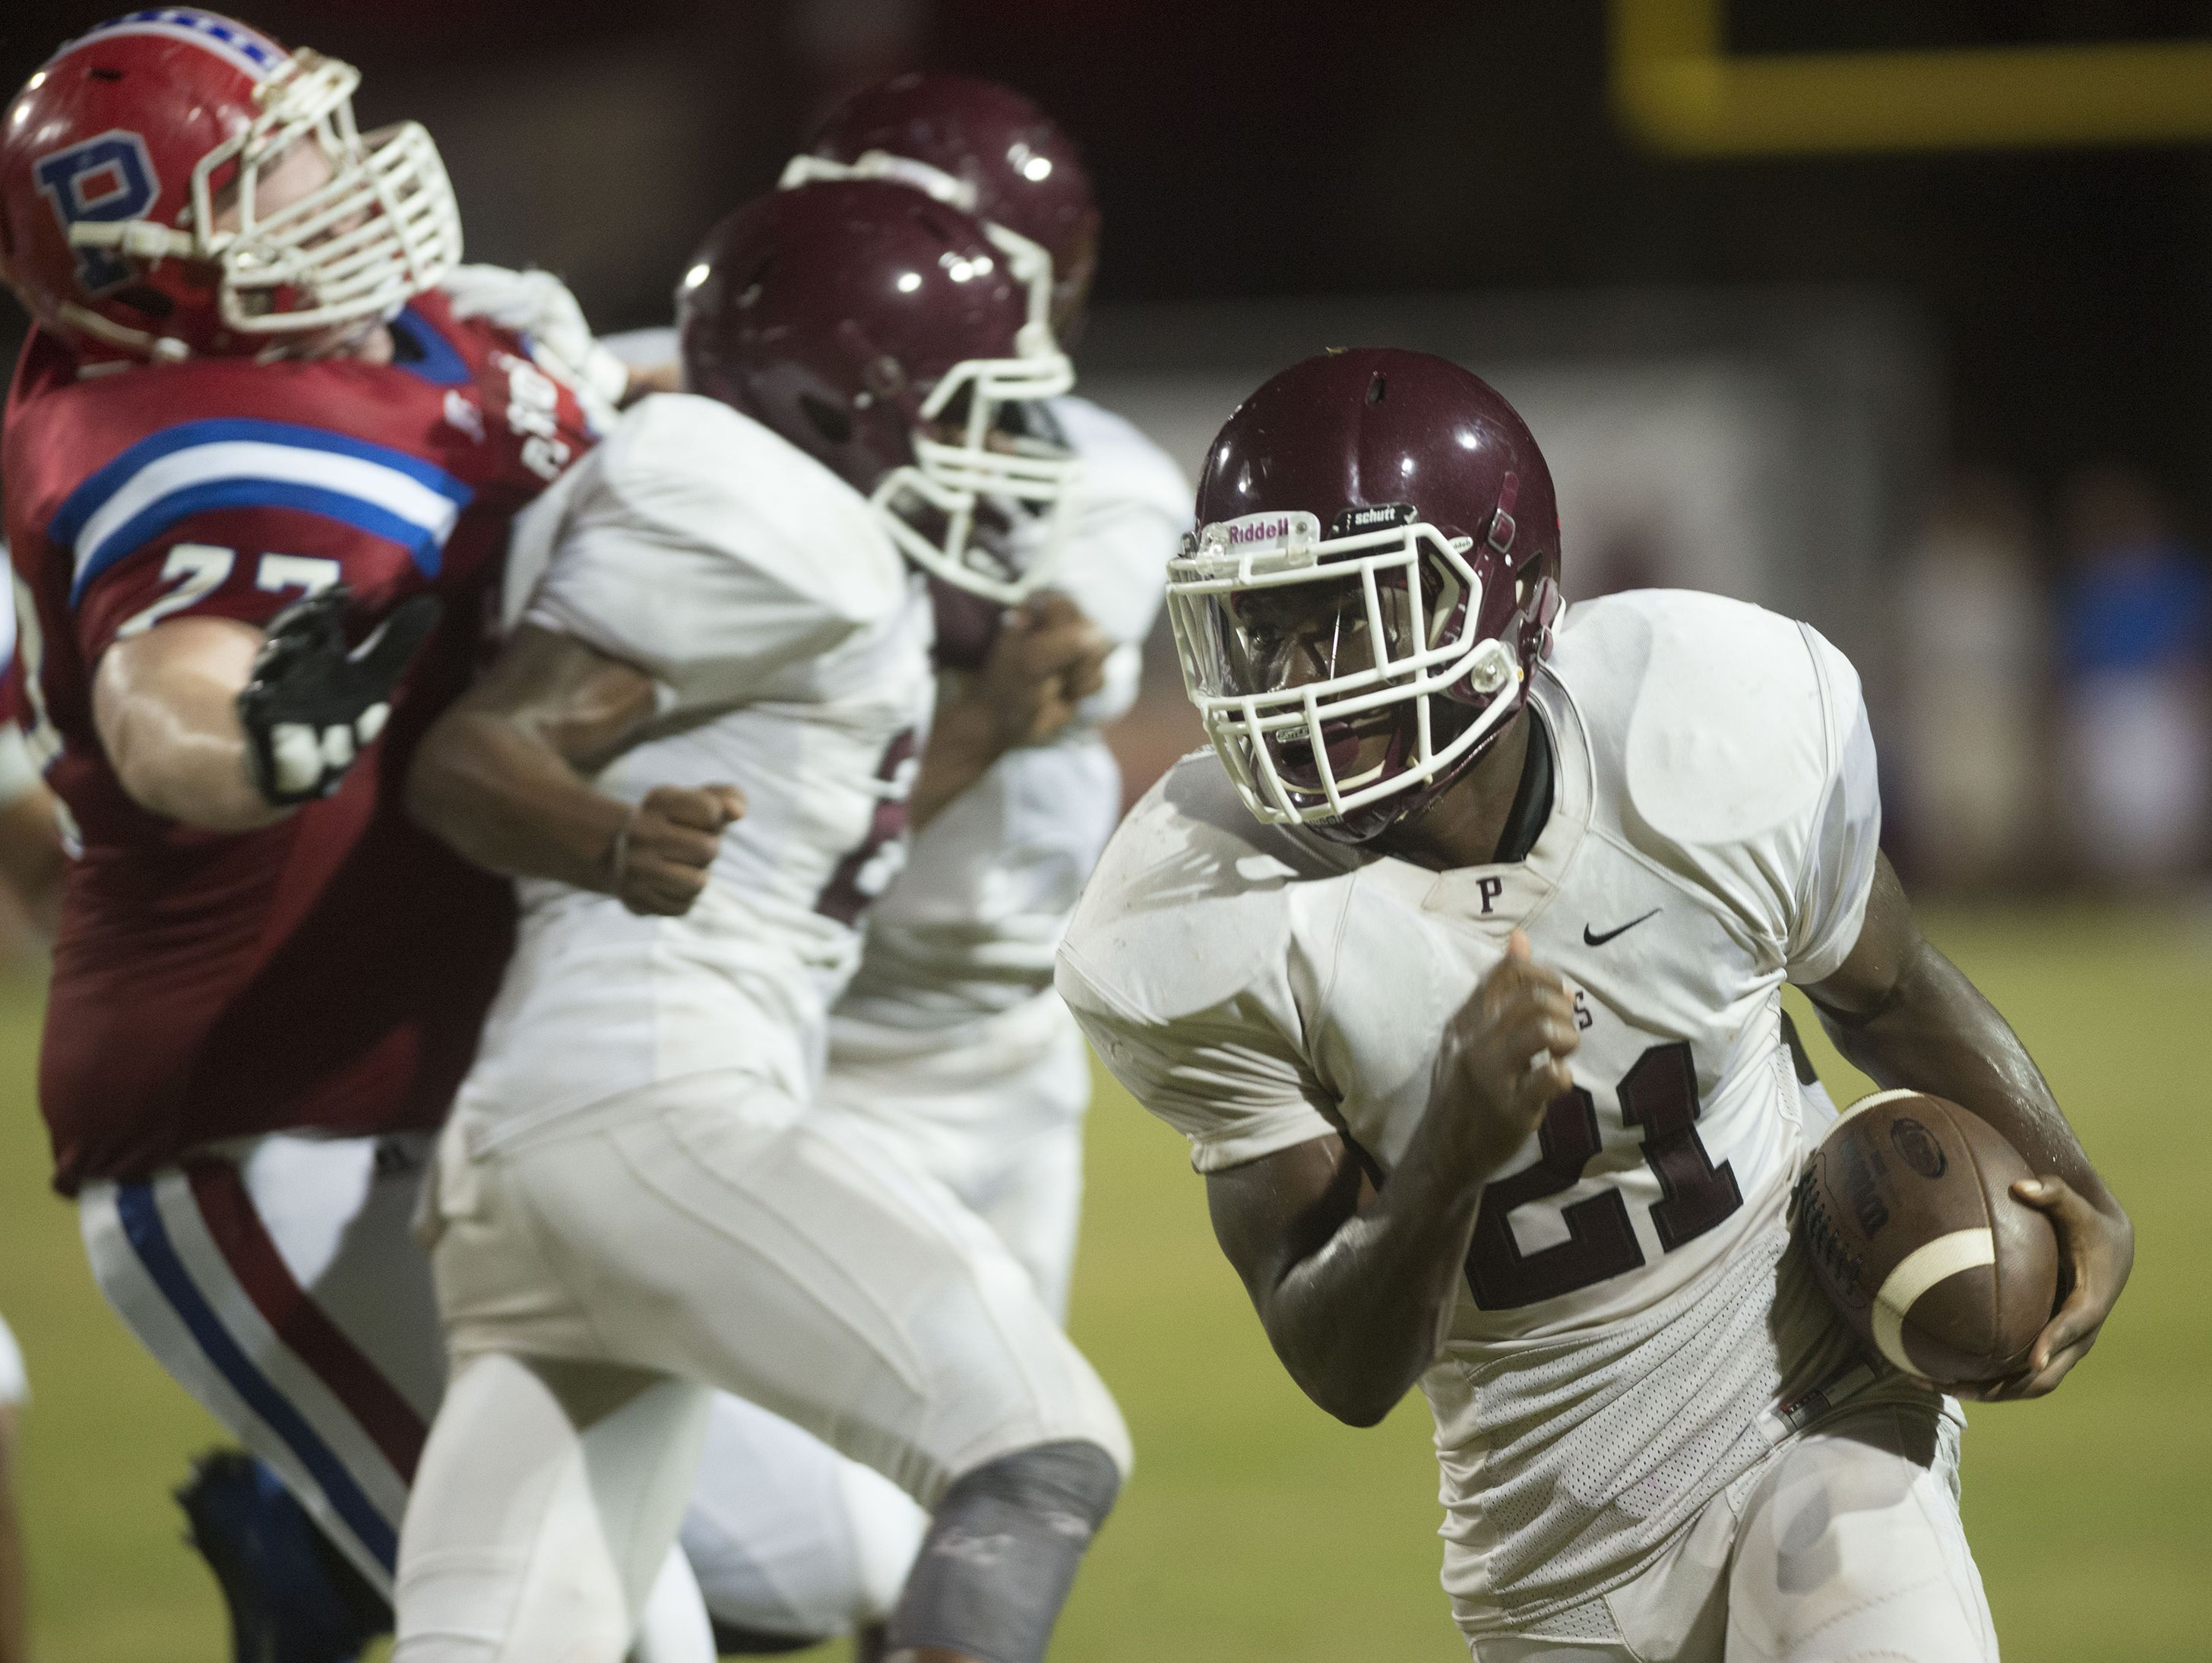 Pensacola High School running back Kenneth Hamilton, (No. 21), turns up field for extra yards thanks to the blocking of his teammates during Friday night's game against Pace High.